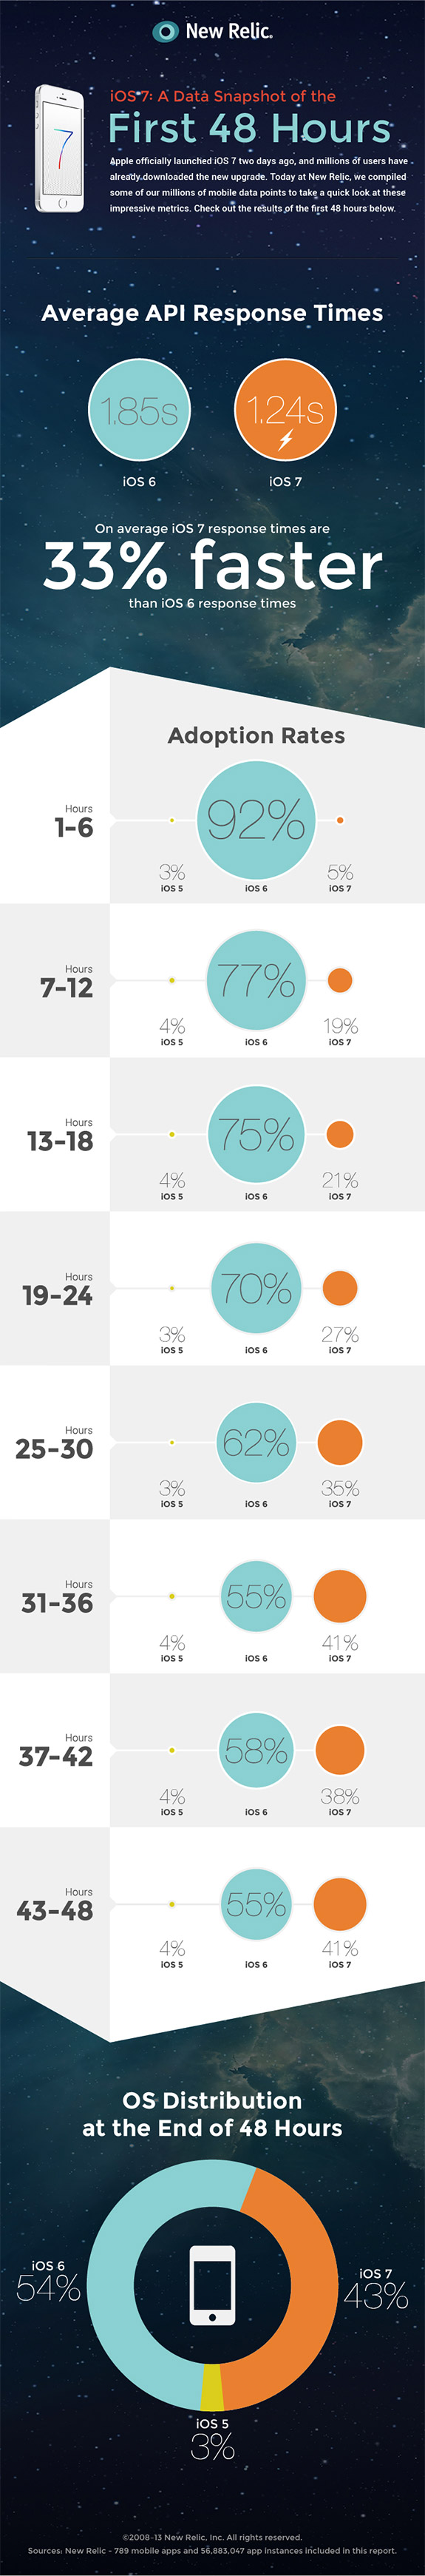 infographic_ios7_adoption_rate